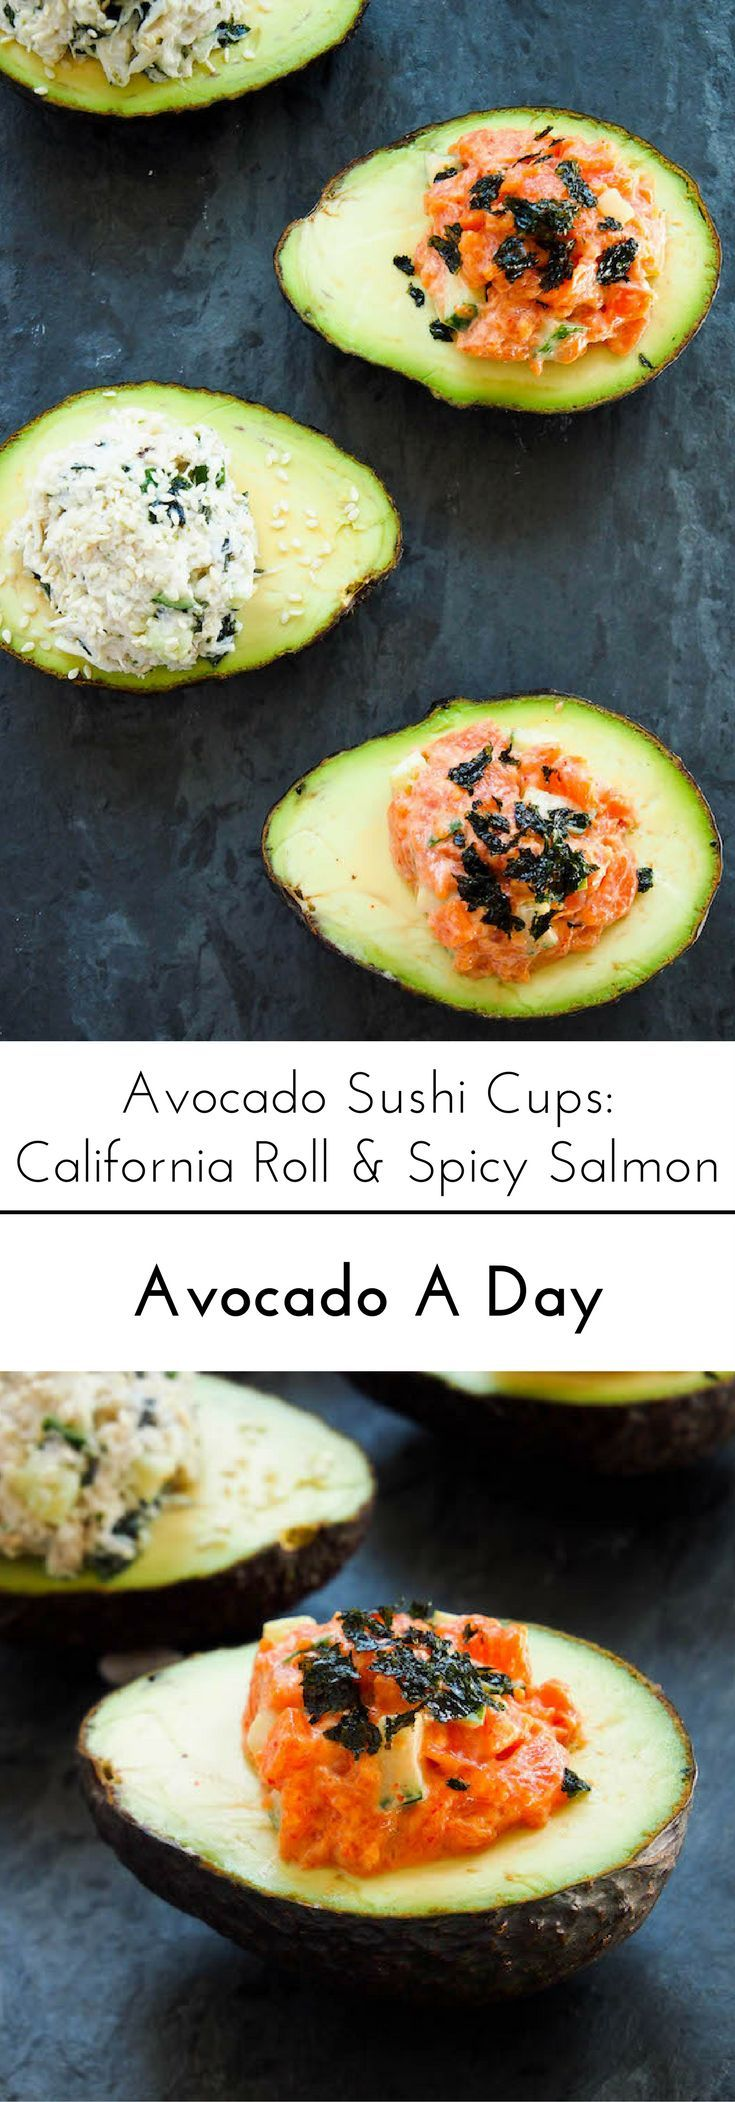 Enjoy sushi without the hassle with these avocado sushi cups! Recipes for California roll and spicy smoked salmon!